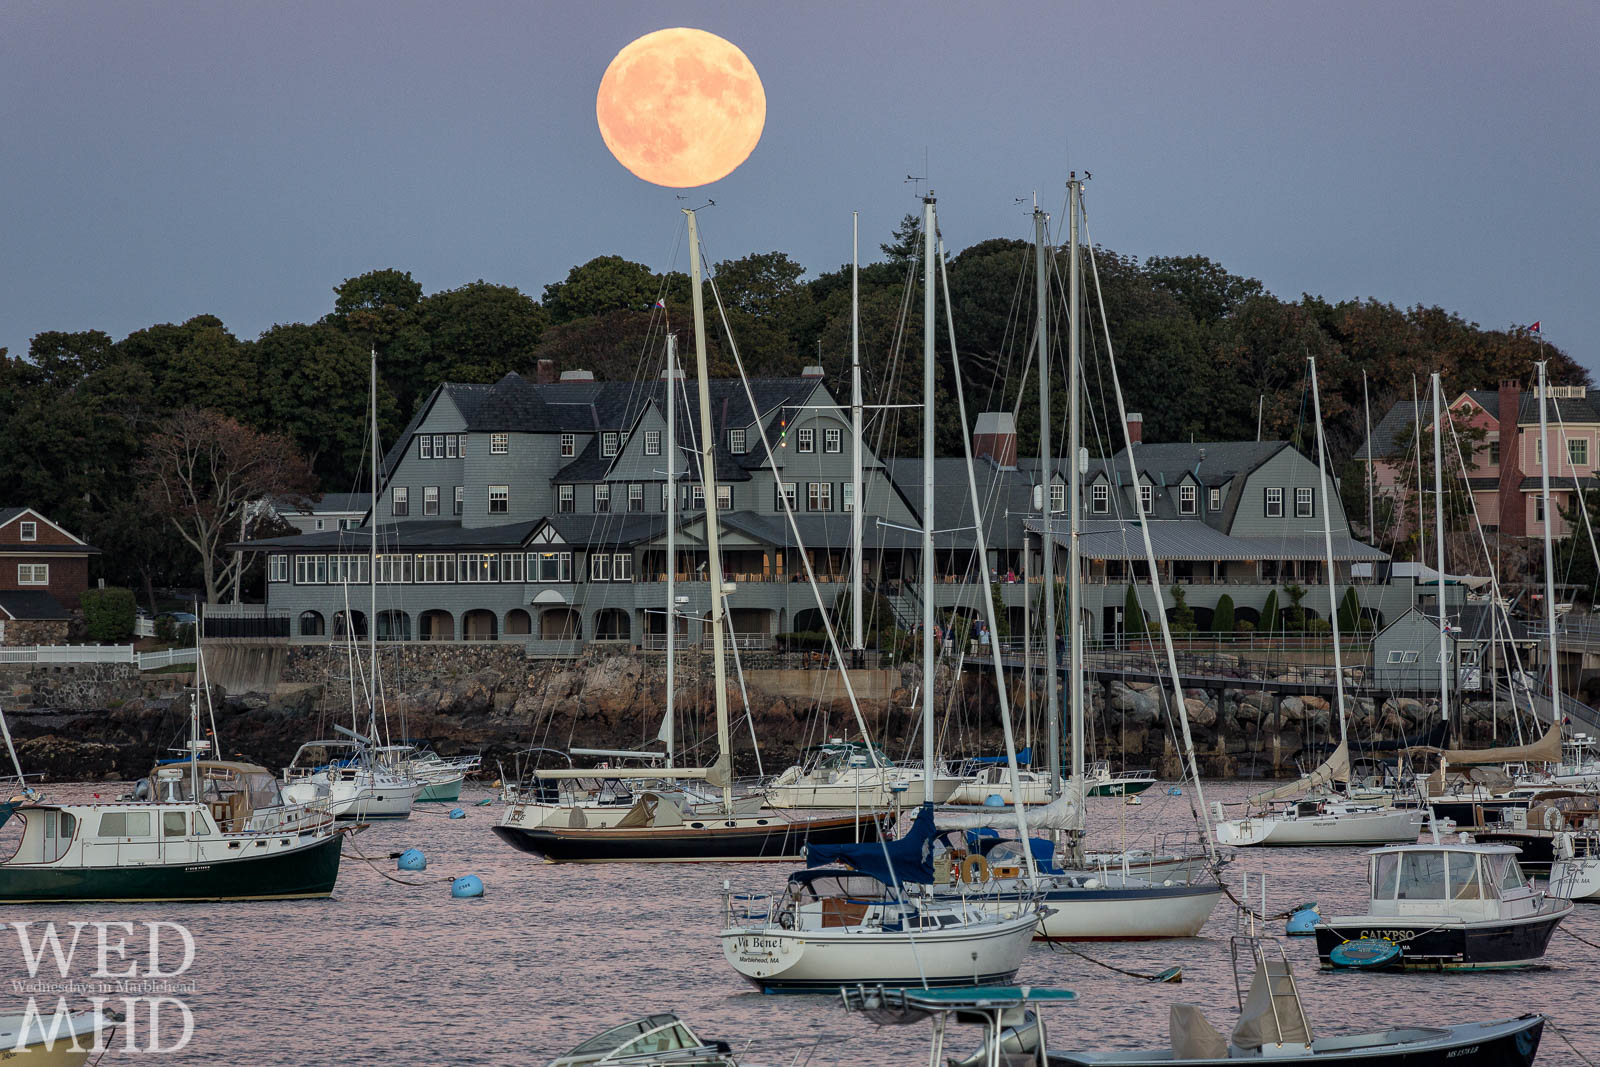 The Harvest moon rises over the Corinthian Yacht Club as a prequel to the total lunar eclipse